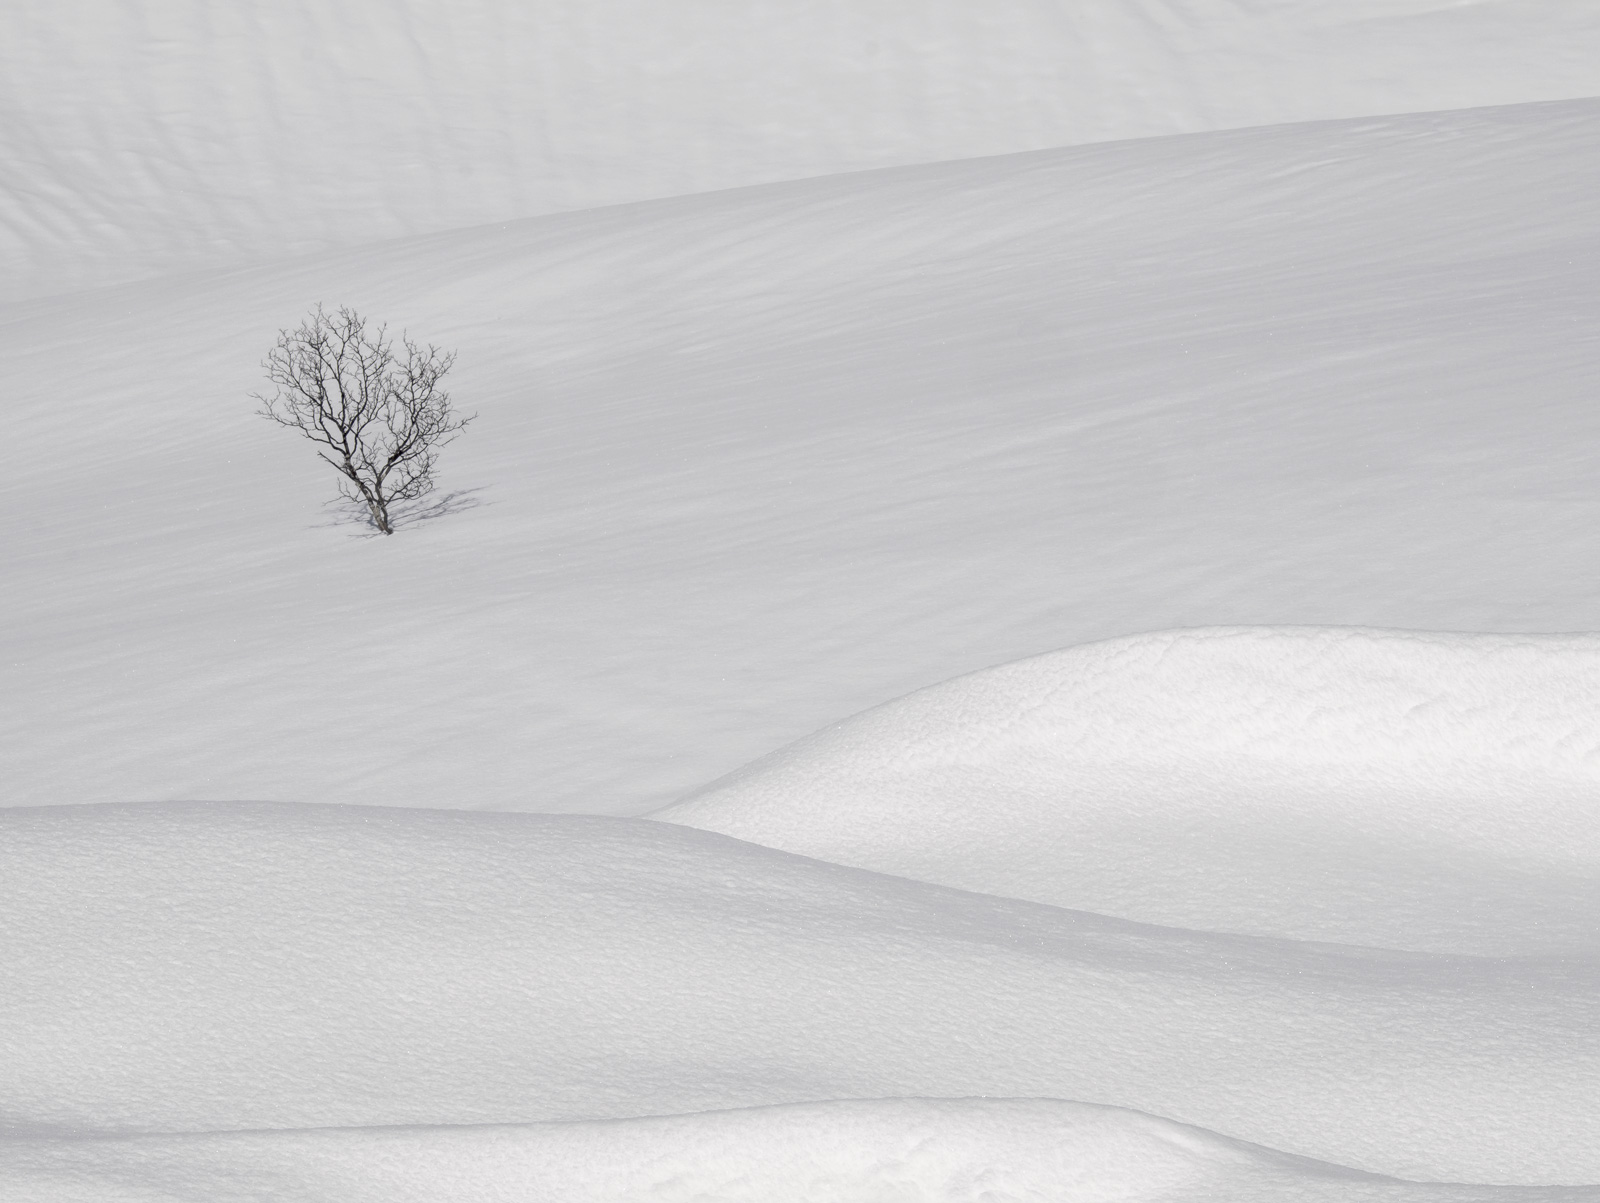 Deep Snow 12, Anderdalan, Senja, Norway, random, folds, seductive, curves, isolated, compressing, sculpted, shaped, photo